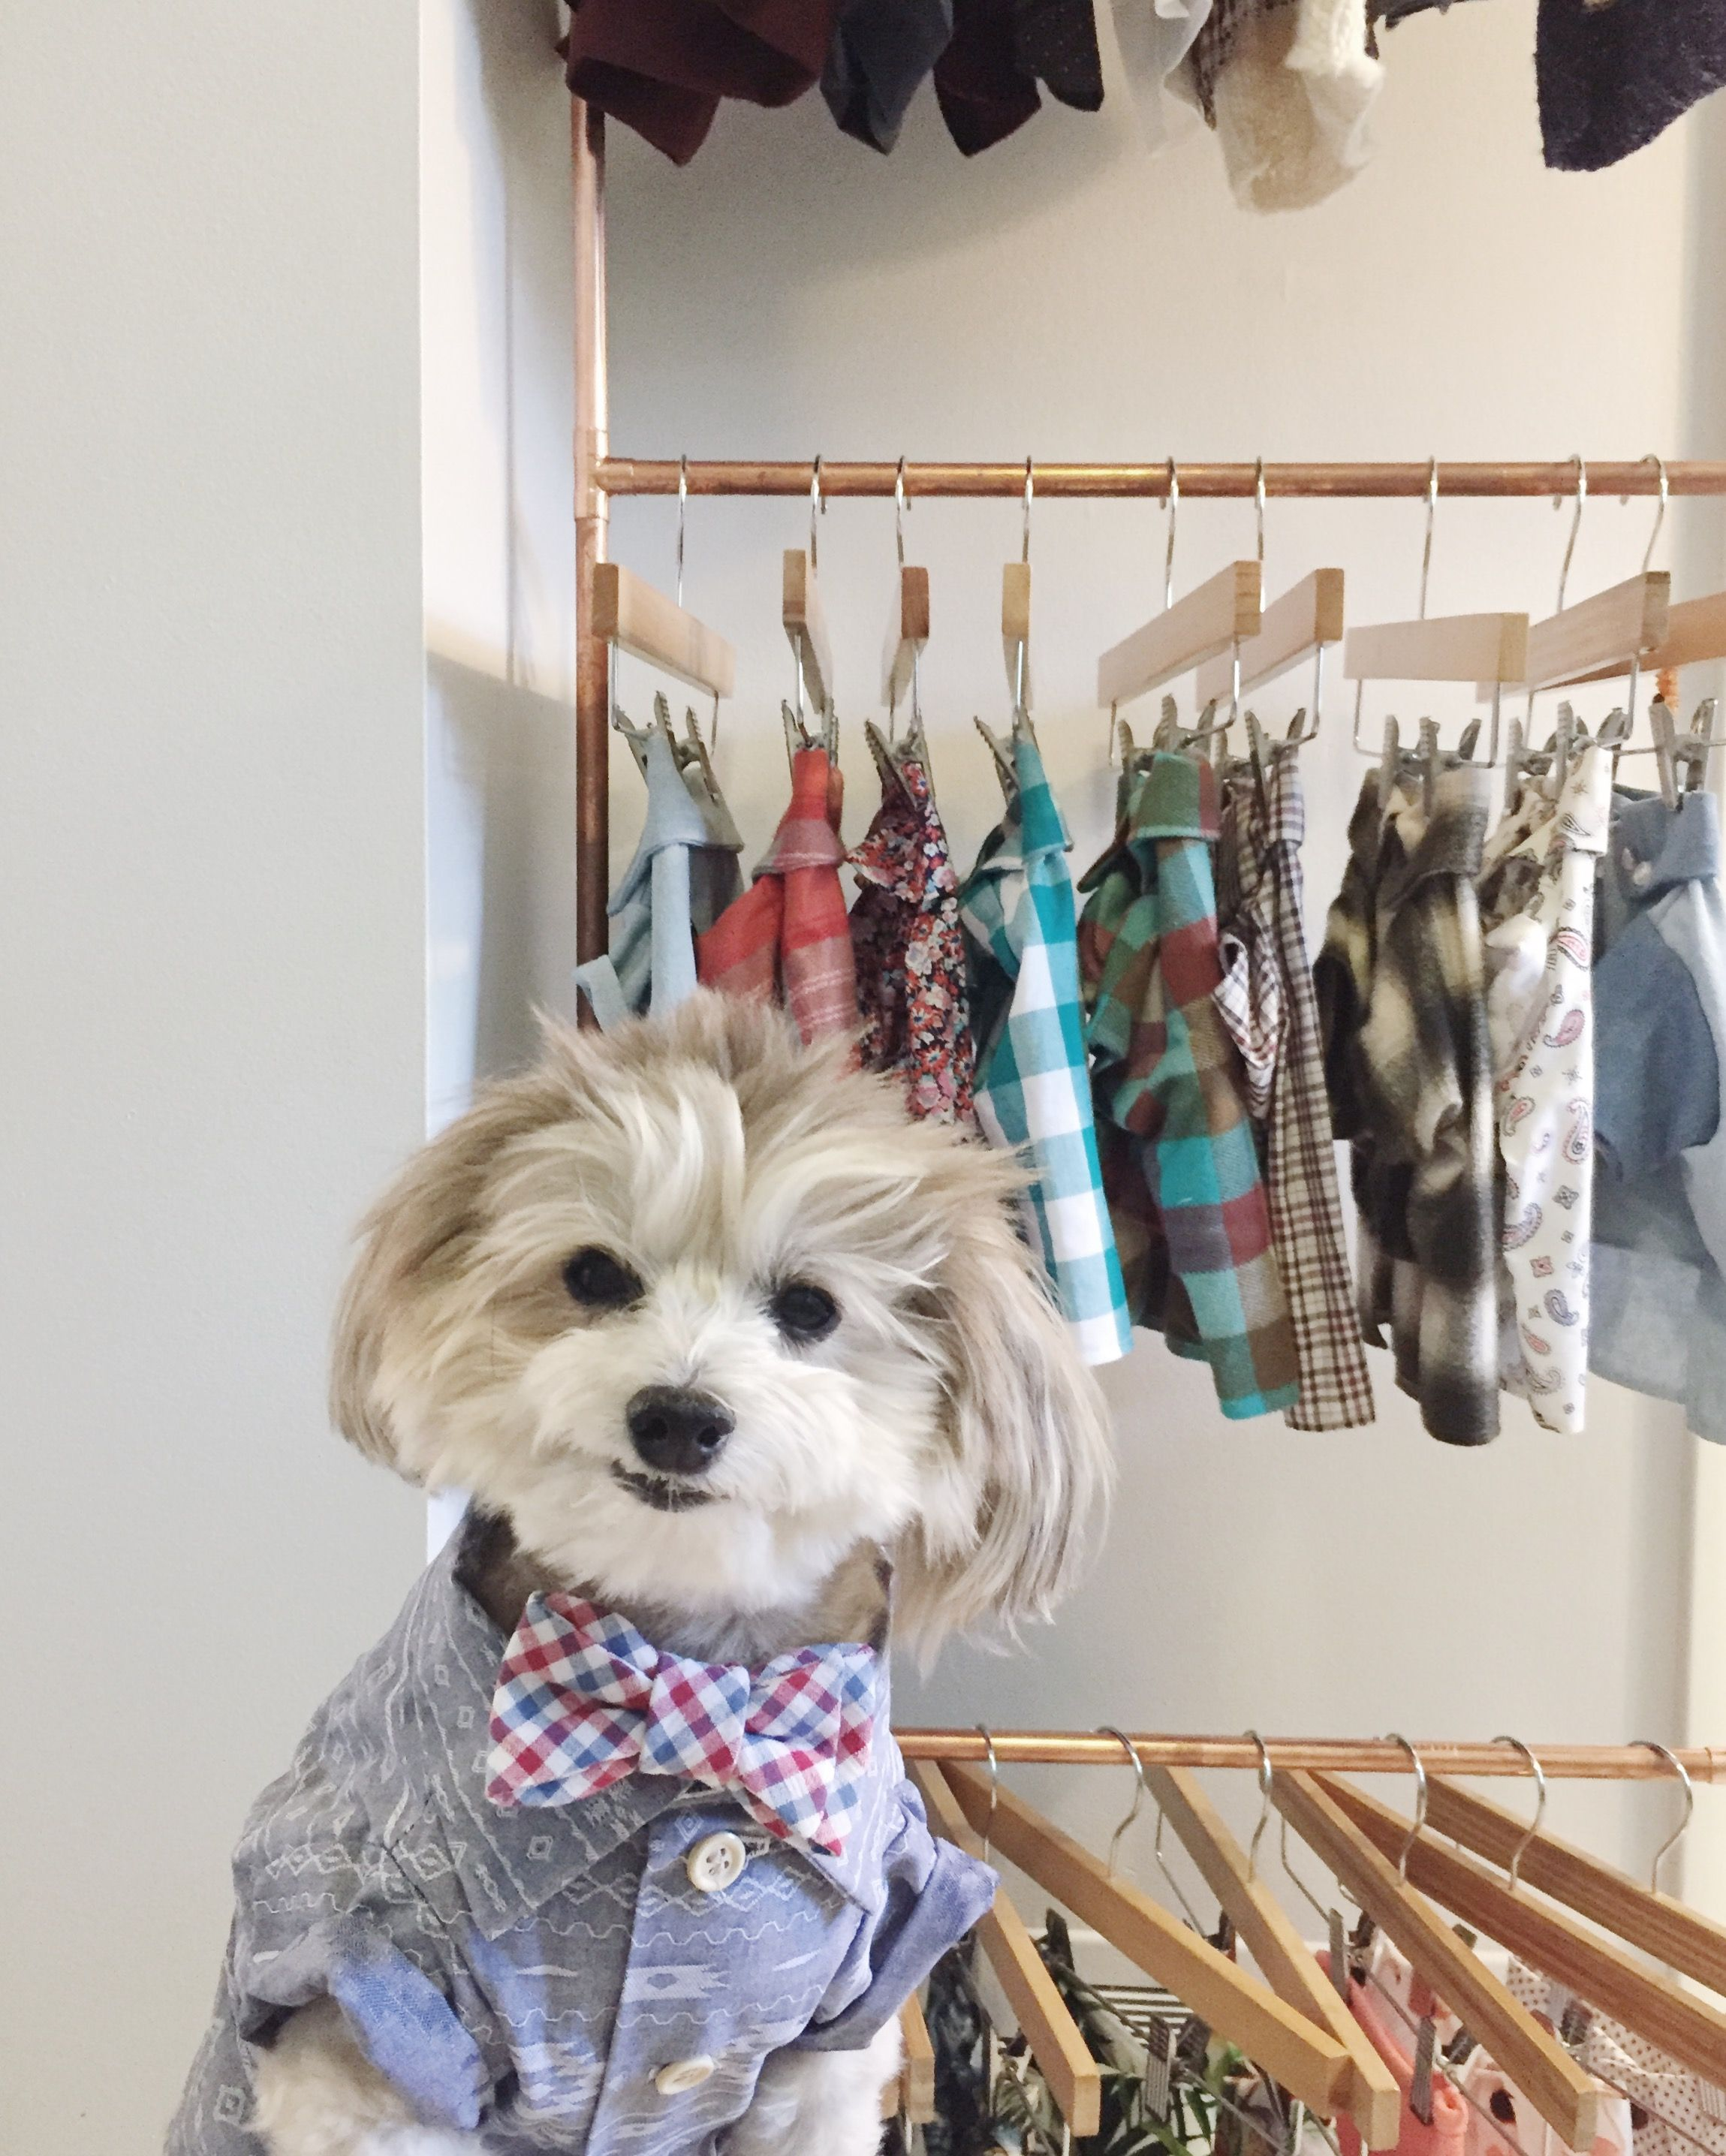 e928a1d4c Dogs in clothes. Fashion for dogs by Dog Threads. Stylish dog clothes. Cute  dog clothes. Hipster dog clothing. Dog clothing boutique.